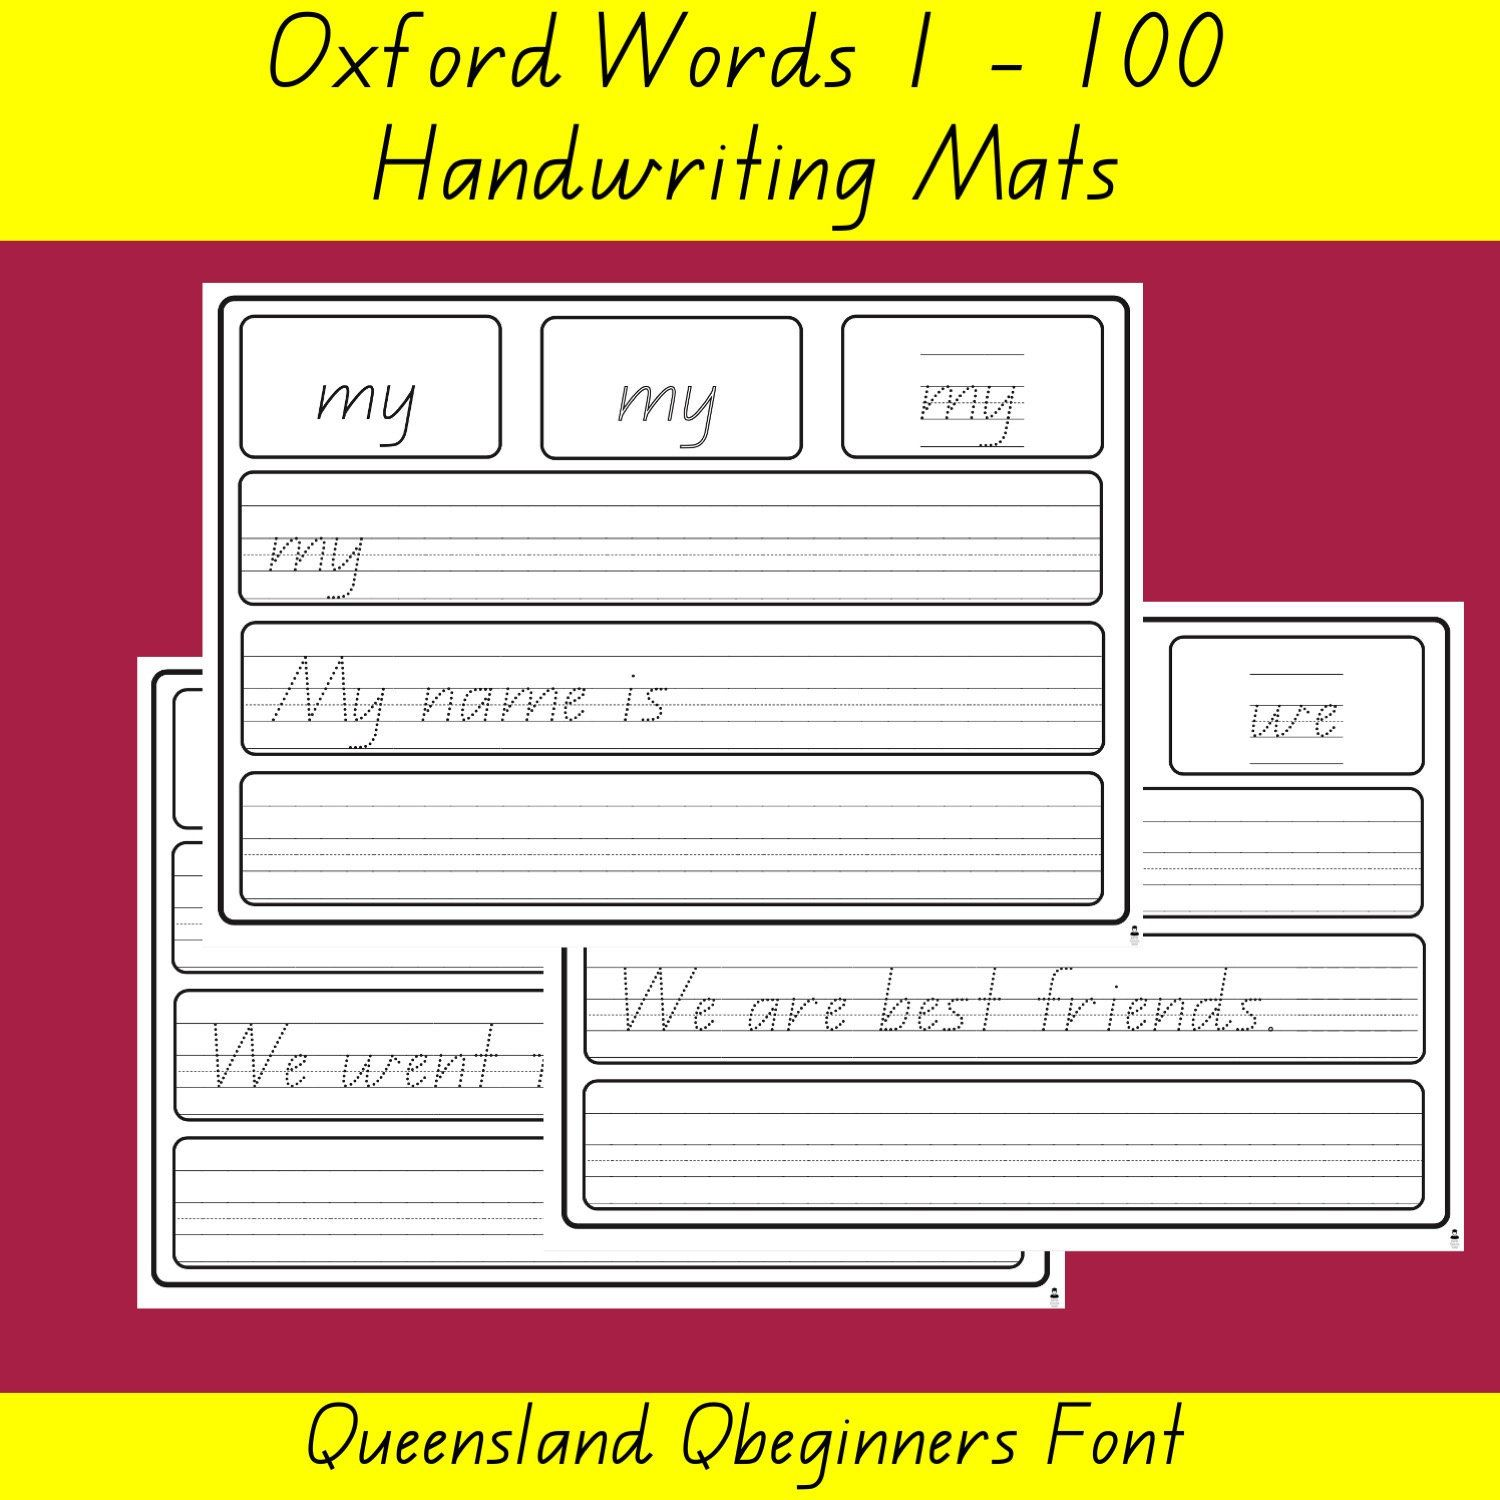 Oxford 100 Word List Queensland Qld Font Writing Word Mat List Home Online Learning Handwriting Writing Words Word List Word Practice [ 1500 x 1500 Pixel ]